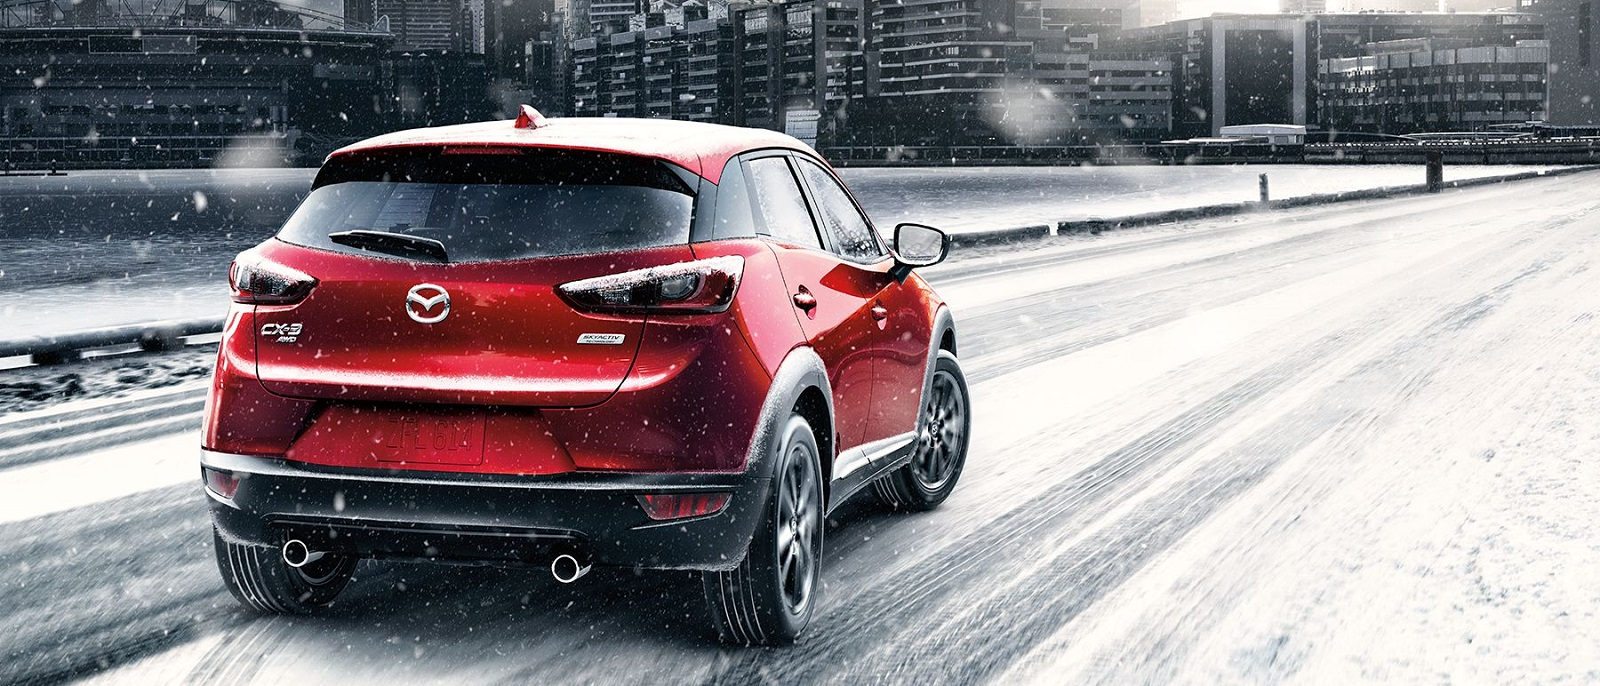 2016-cx3-soulred-winter-1